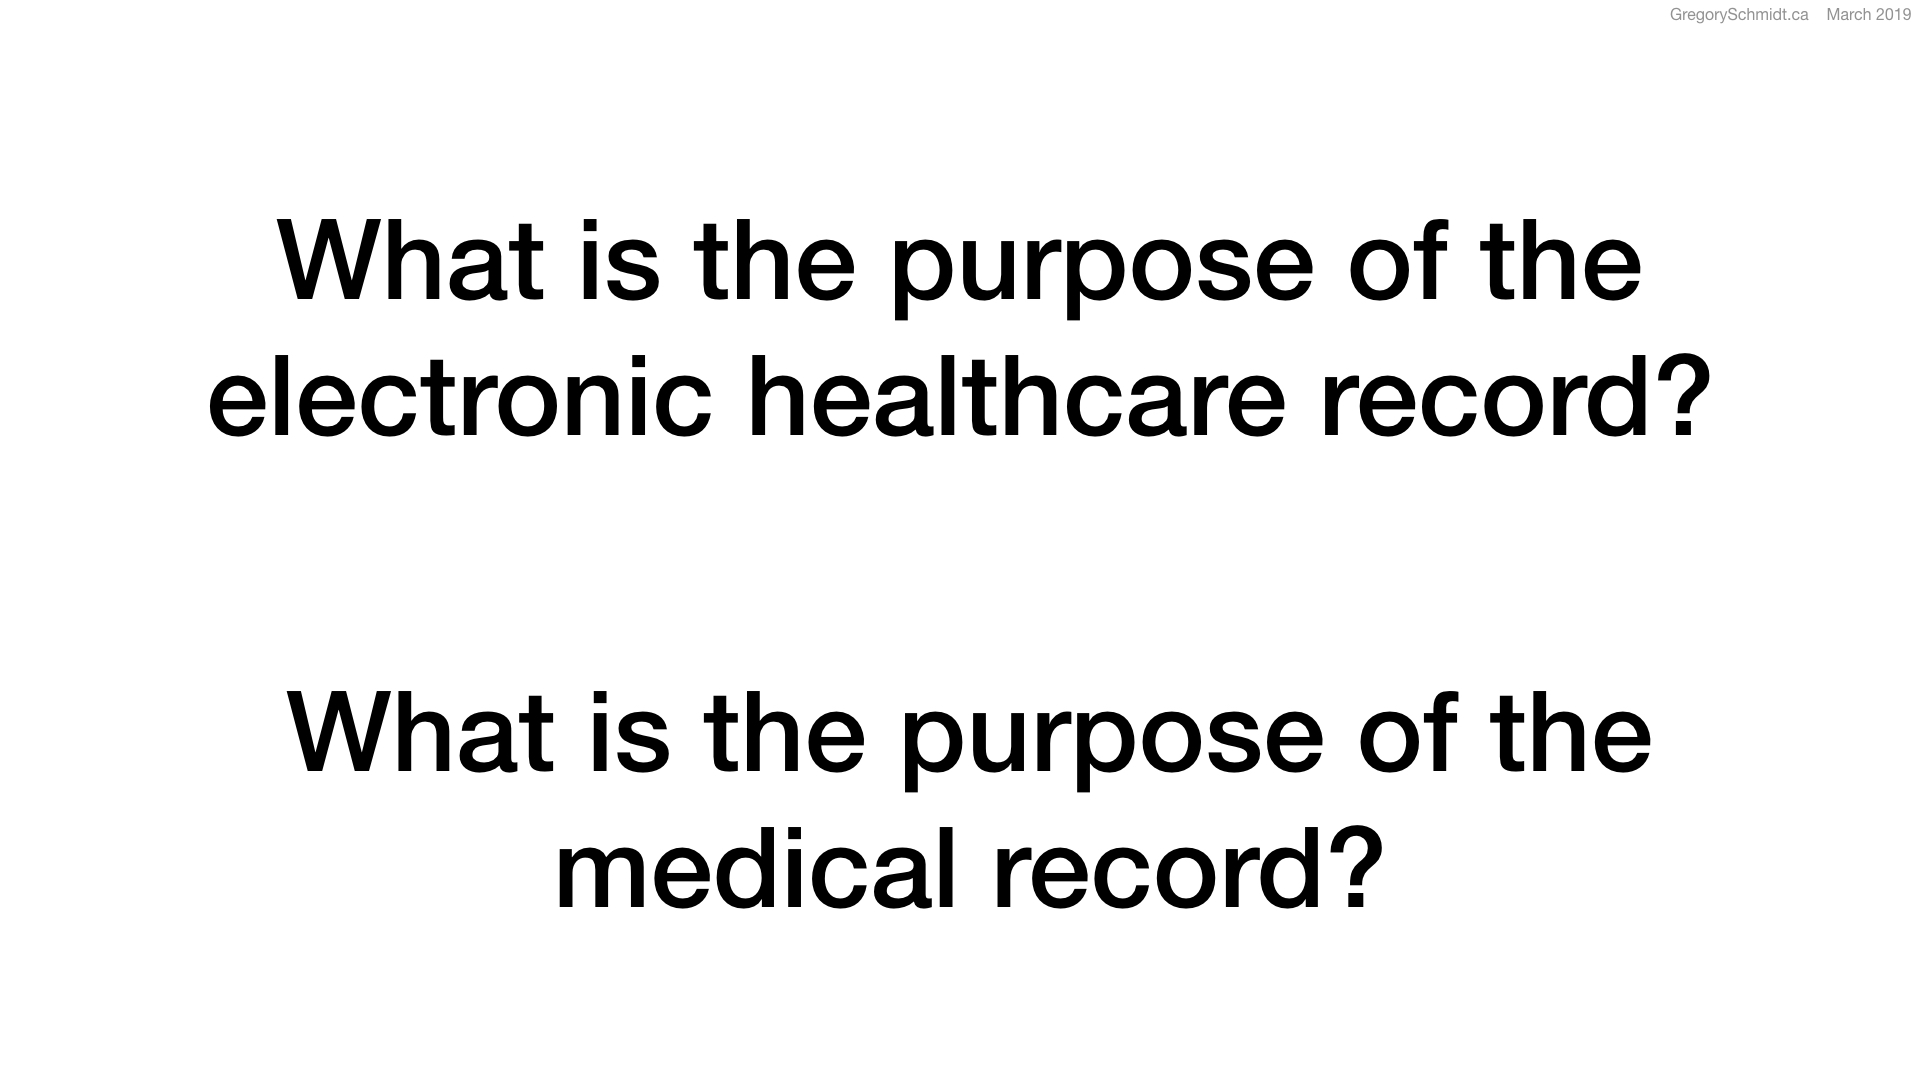 what is the purpose of the medical record?